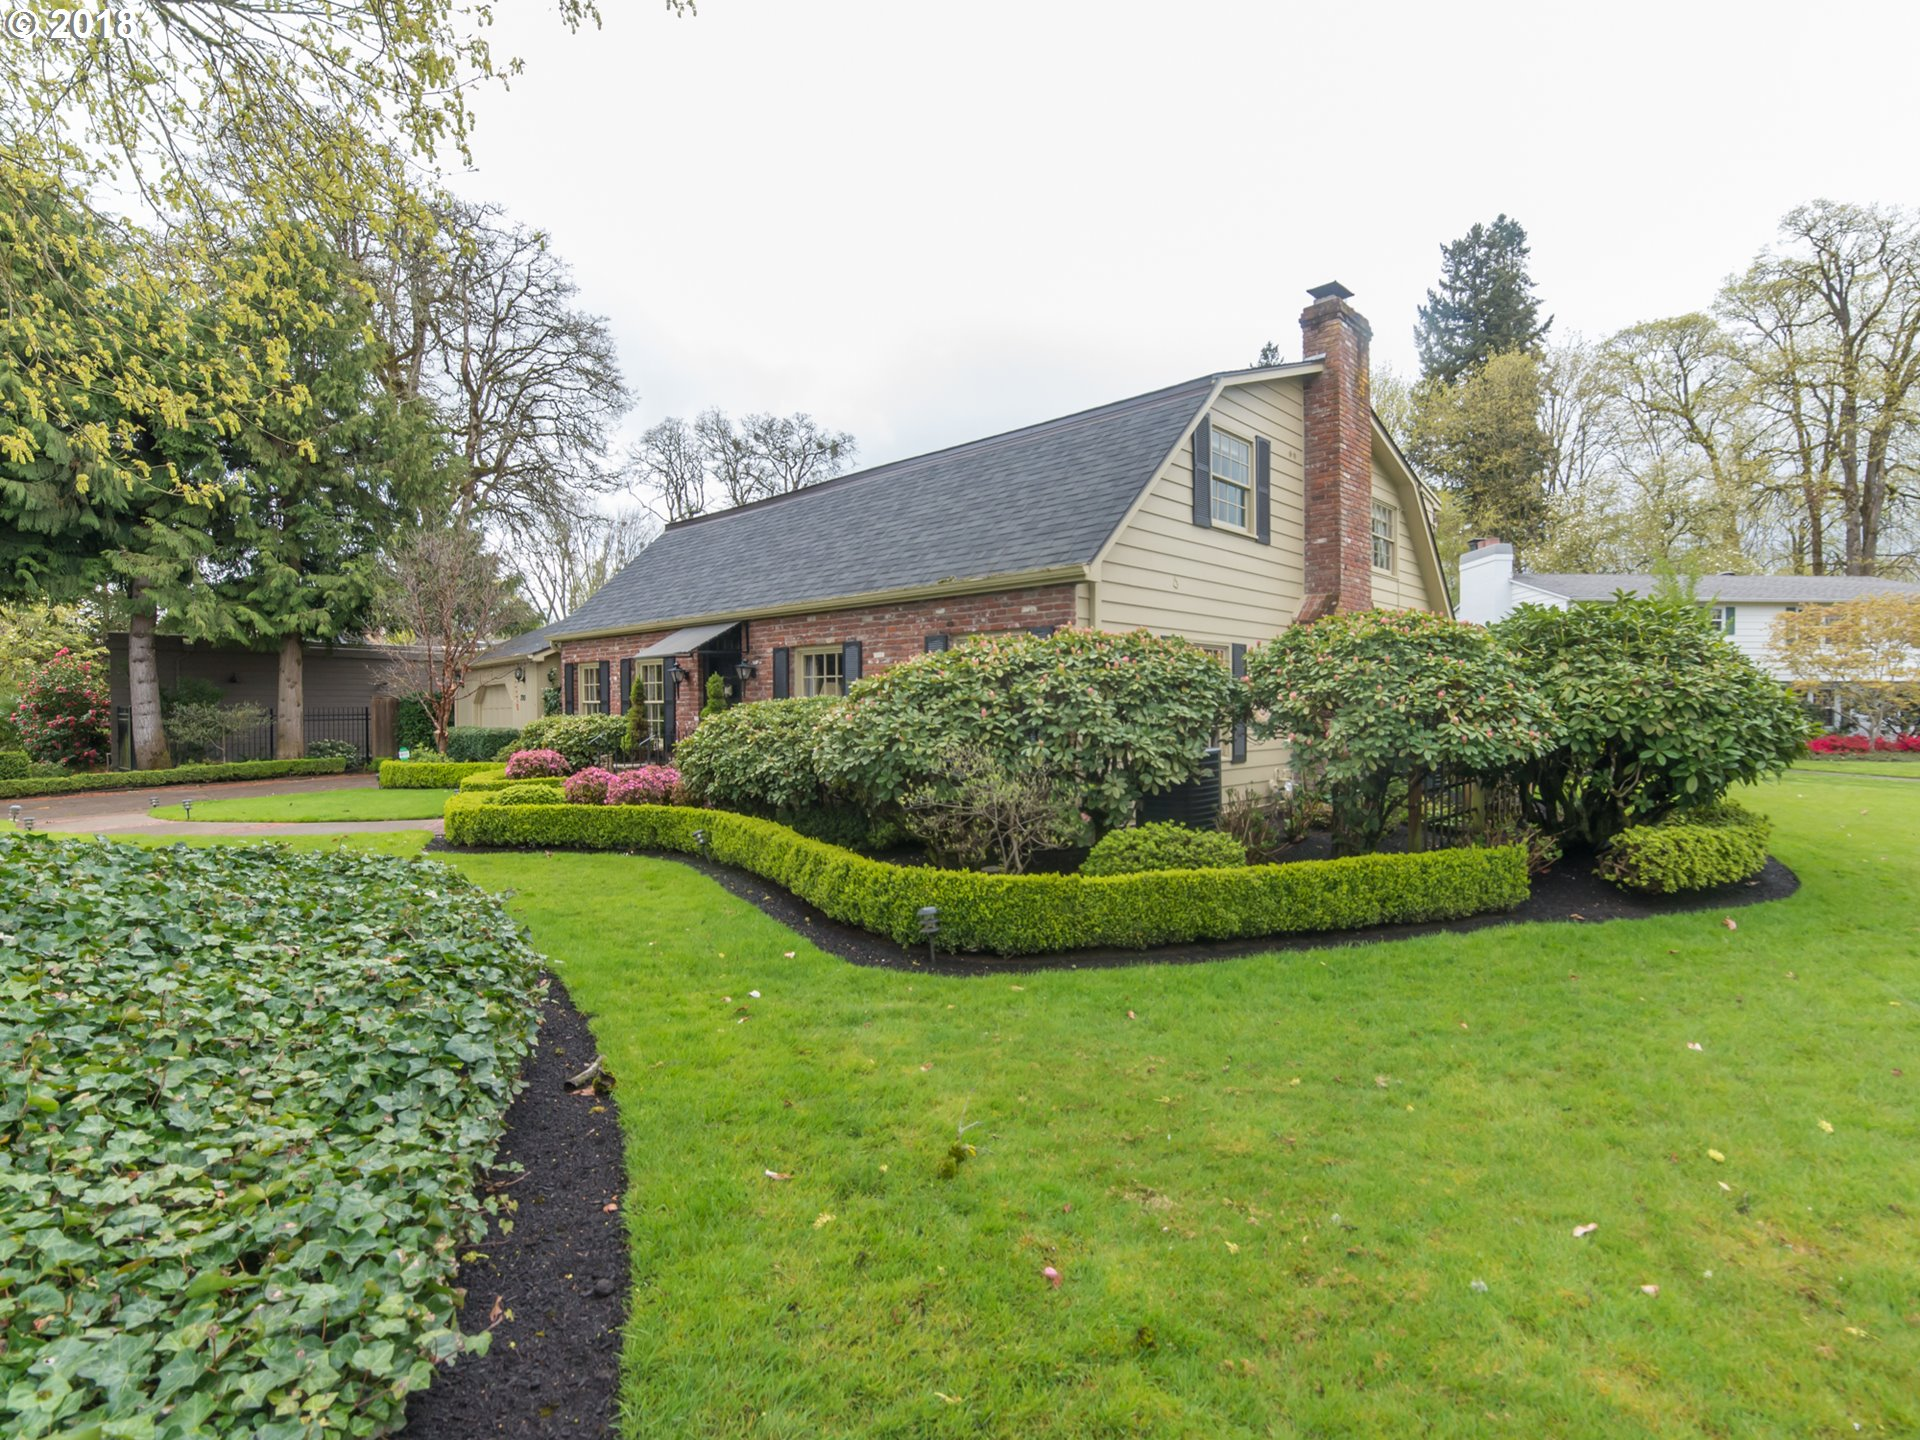 700 FAIR OAKS DR Eugene, OR 97401 - MLS #: 18647148